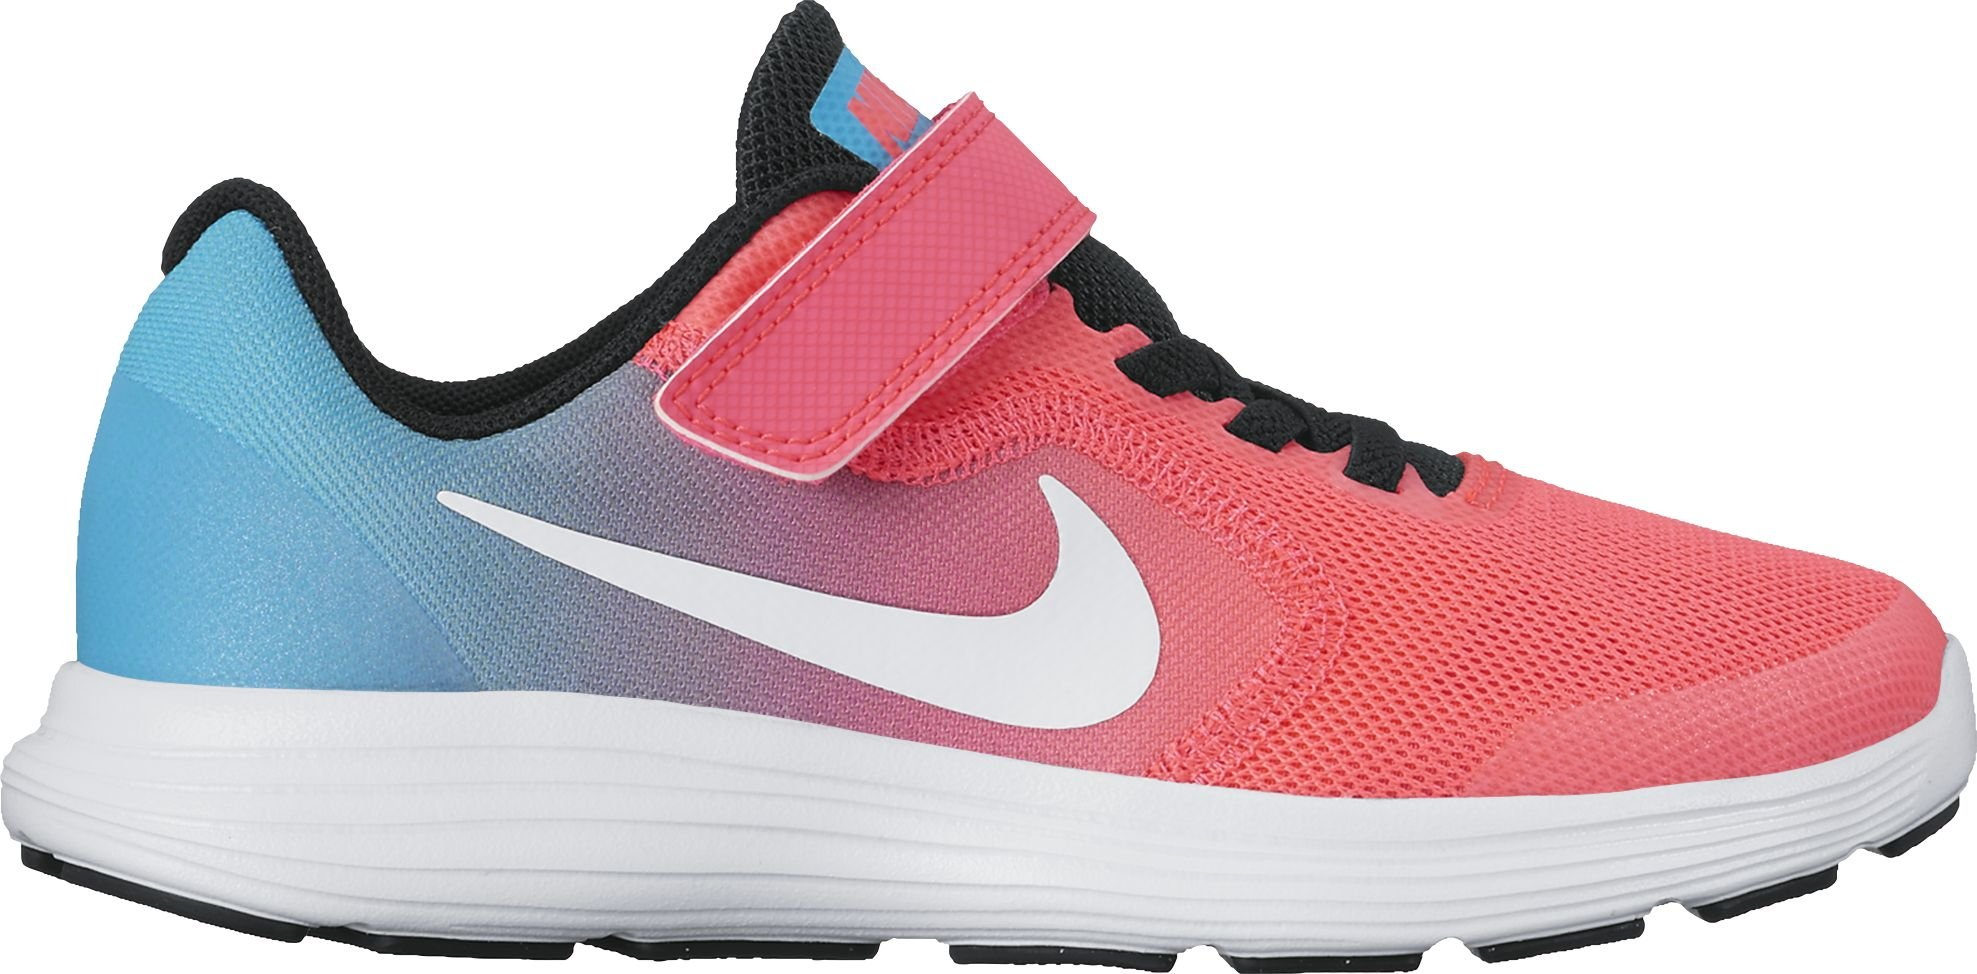 NIKE Kids' Revolution 3 (Psv) Running-Shoes, Chlorine Blue/White/Racer Pink/Black, 1 M US Little Kid